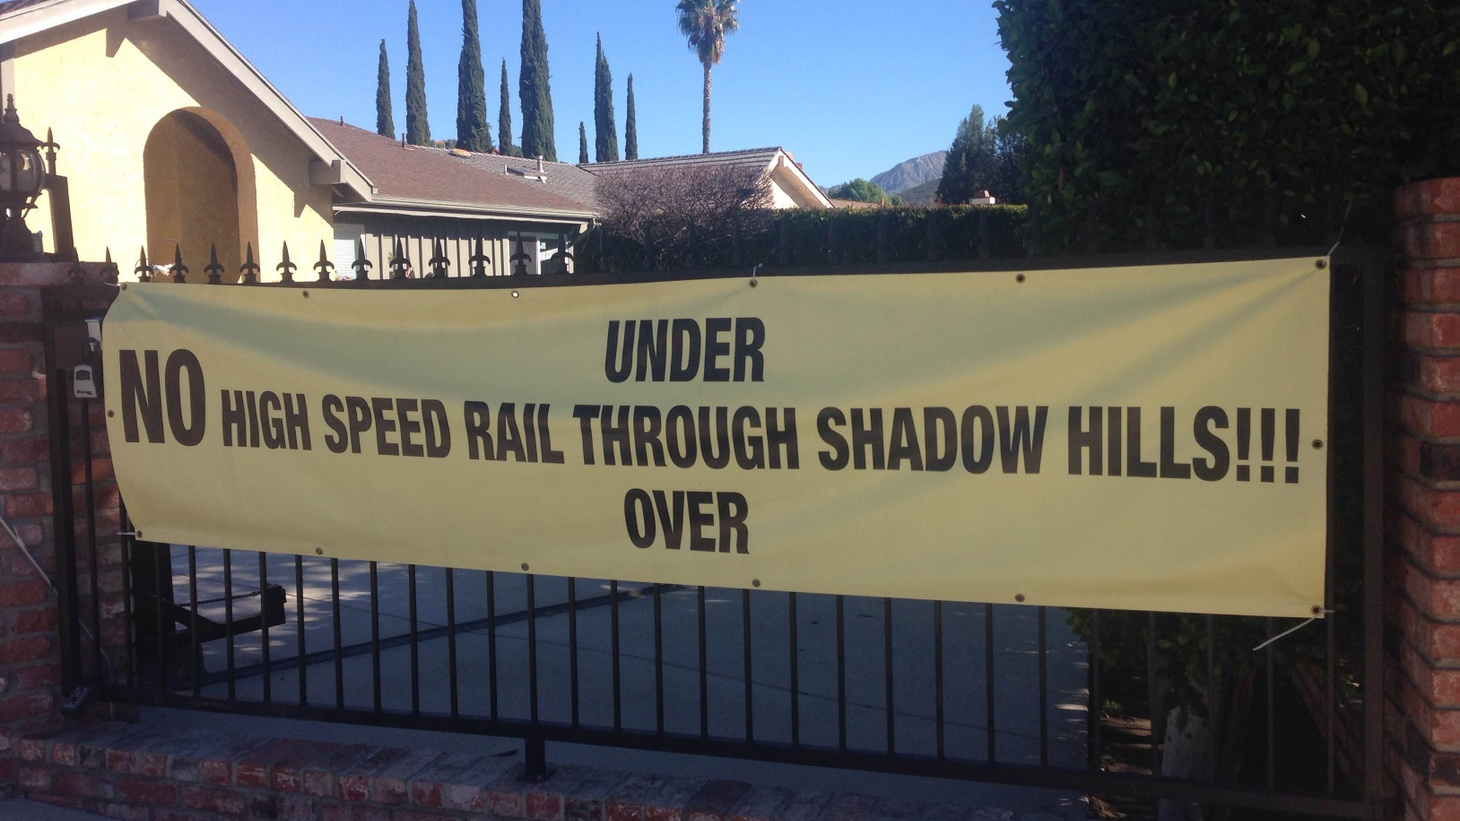 Out near Fresno, ground has finally been broken for California's $68 billion high-speed rail project. Closer to LA, possible routes are getting serious consideration. The bullet train may be a long way off, but residents are already organizing to oppose community sacrifice just so it can travel faster from one place to another.